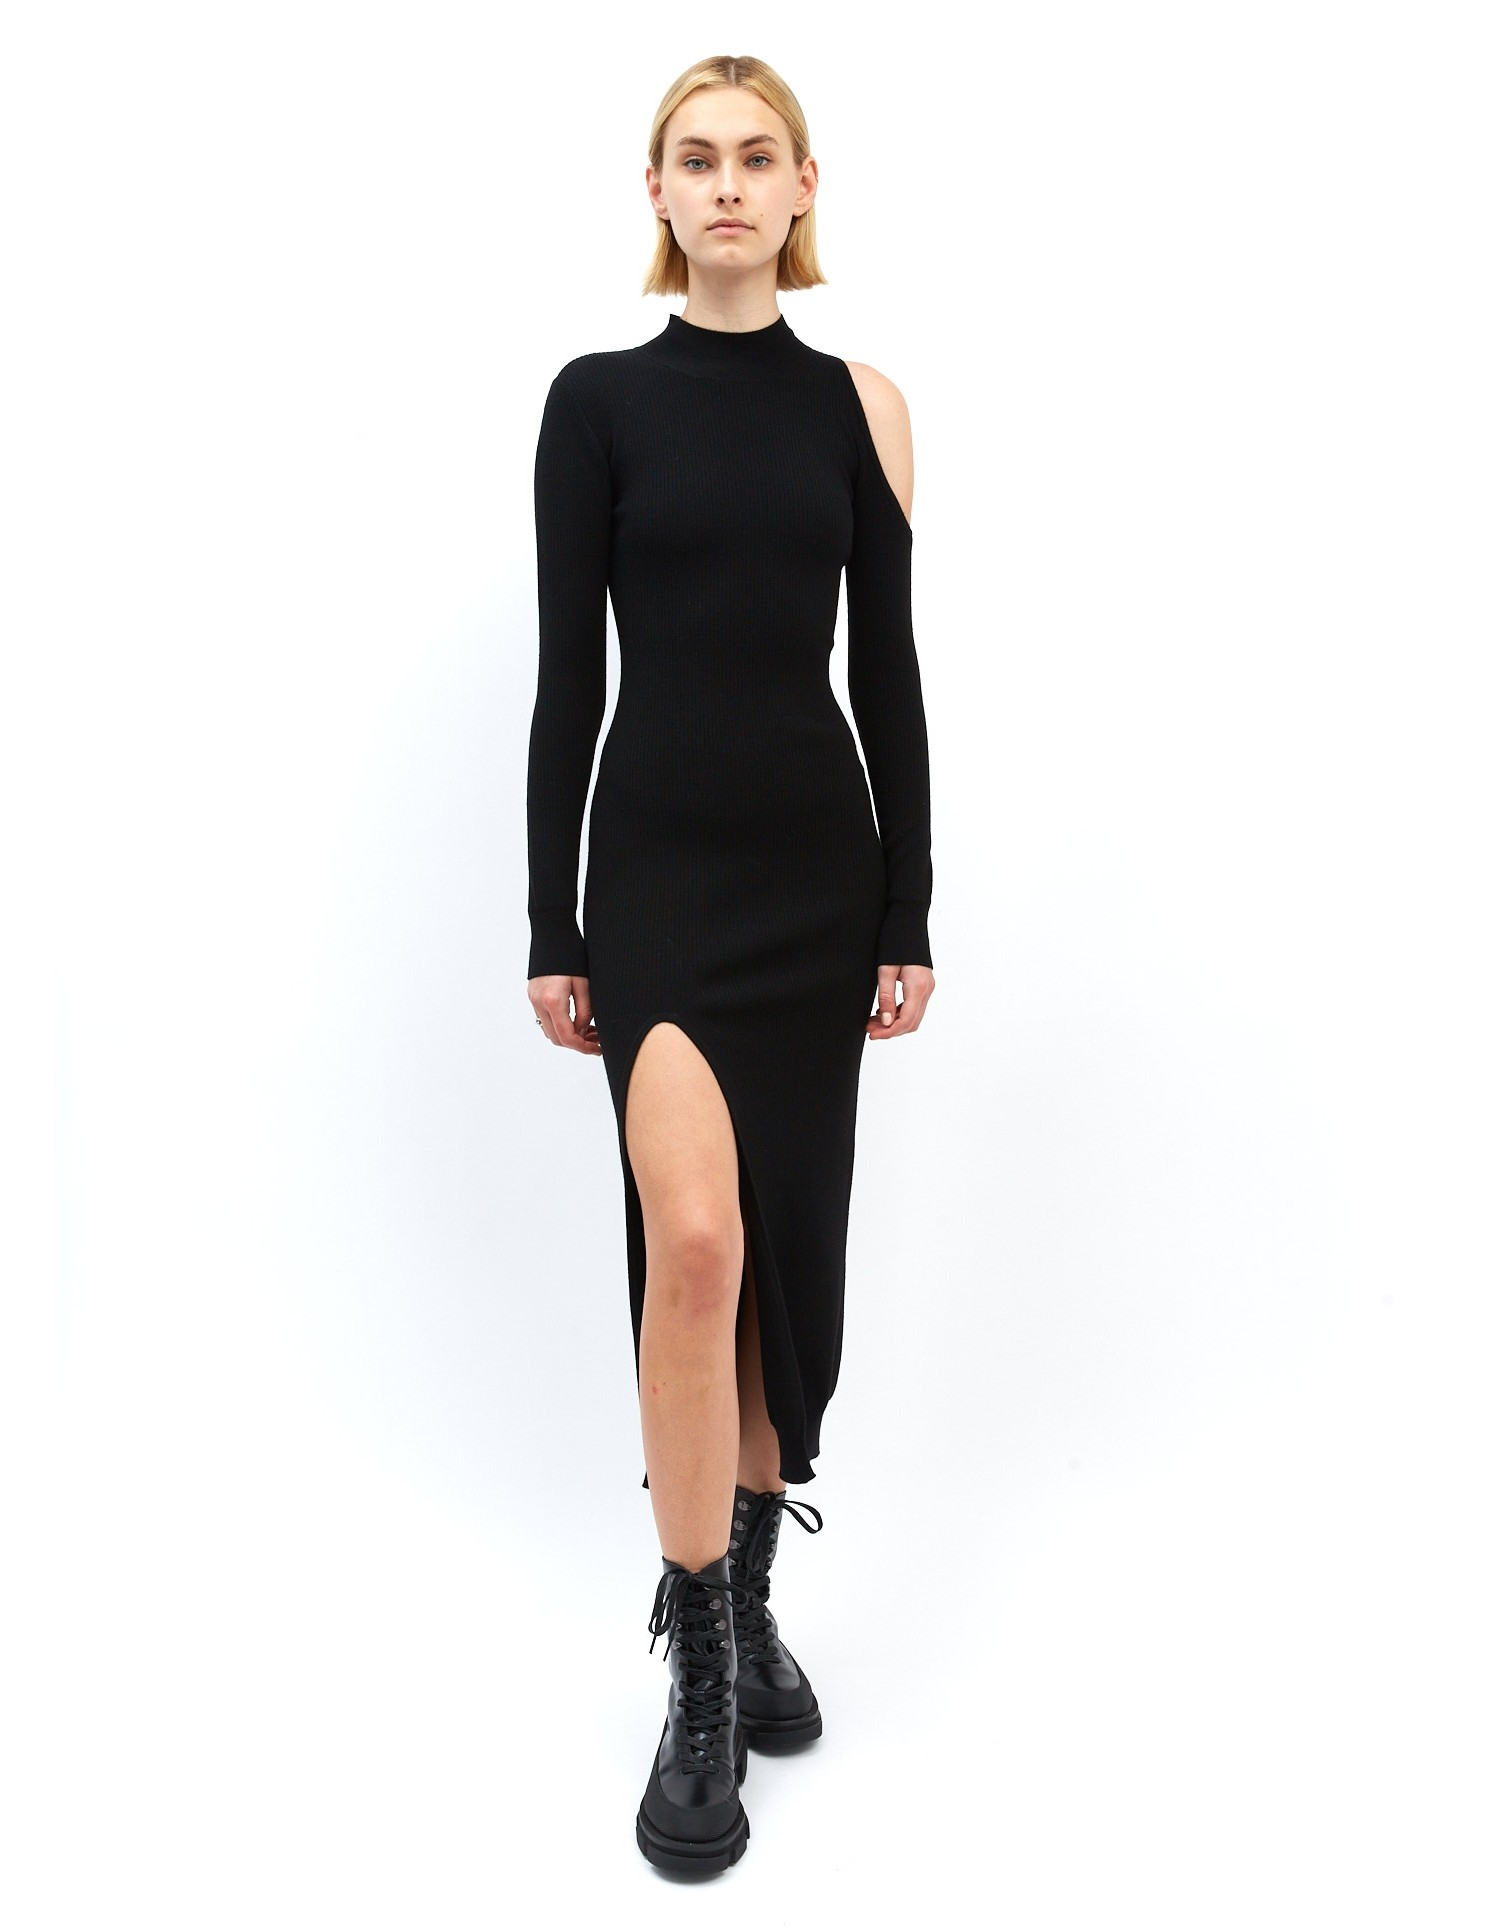 MONSE Cut Out Shoulder Knit Dress in Black on Model Front View